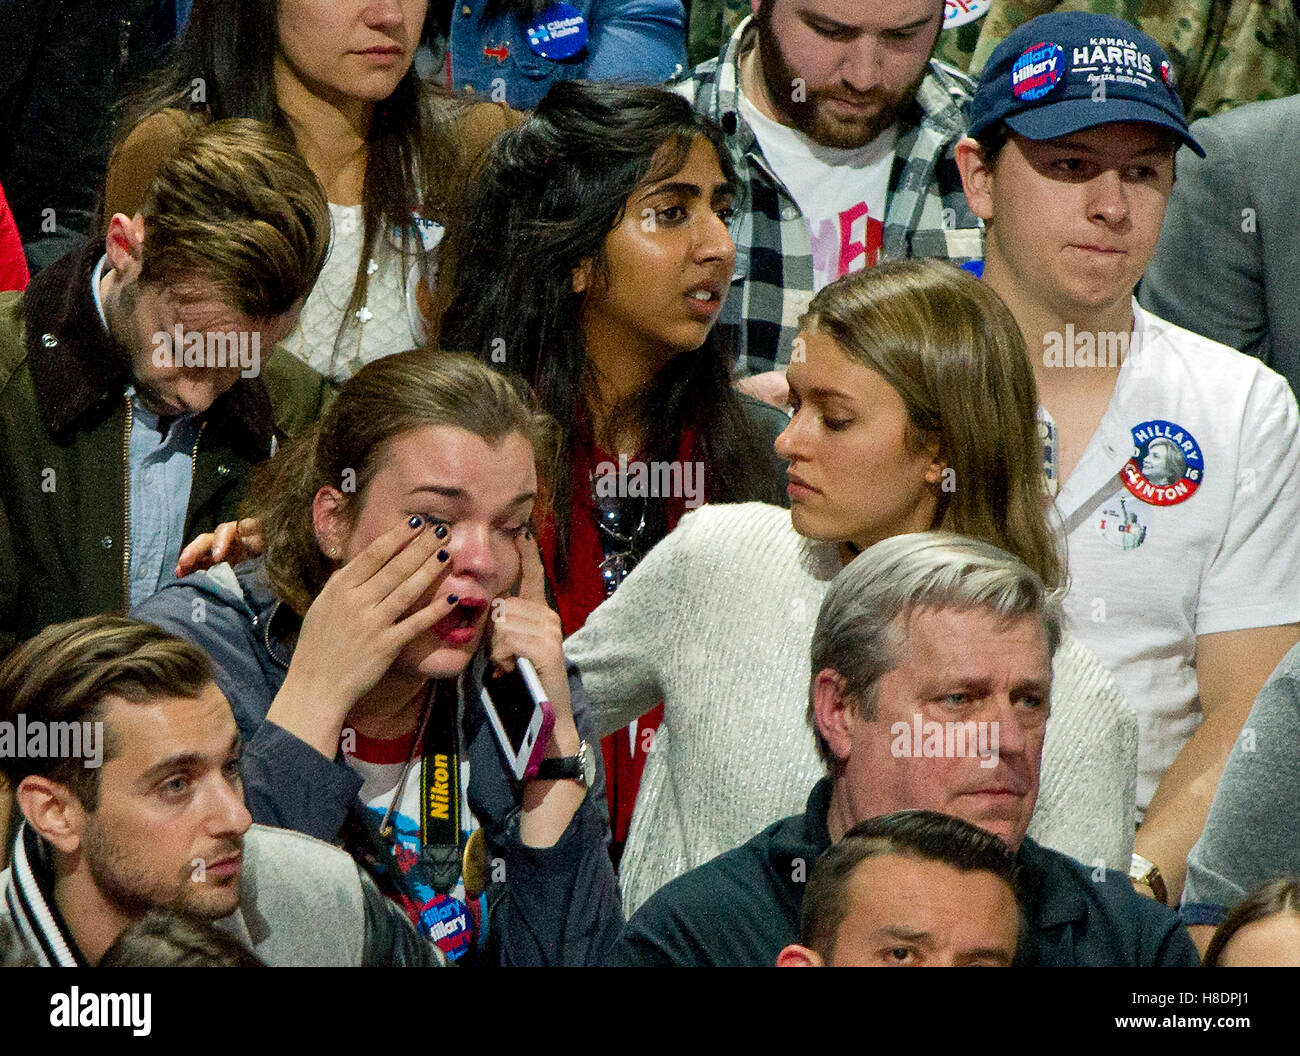 New York, Us. 09th Nov, 2016. Hillary Clinton supporters are tearful as North Carolina is called for Donald Trump - Stock Image